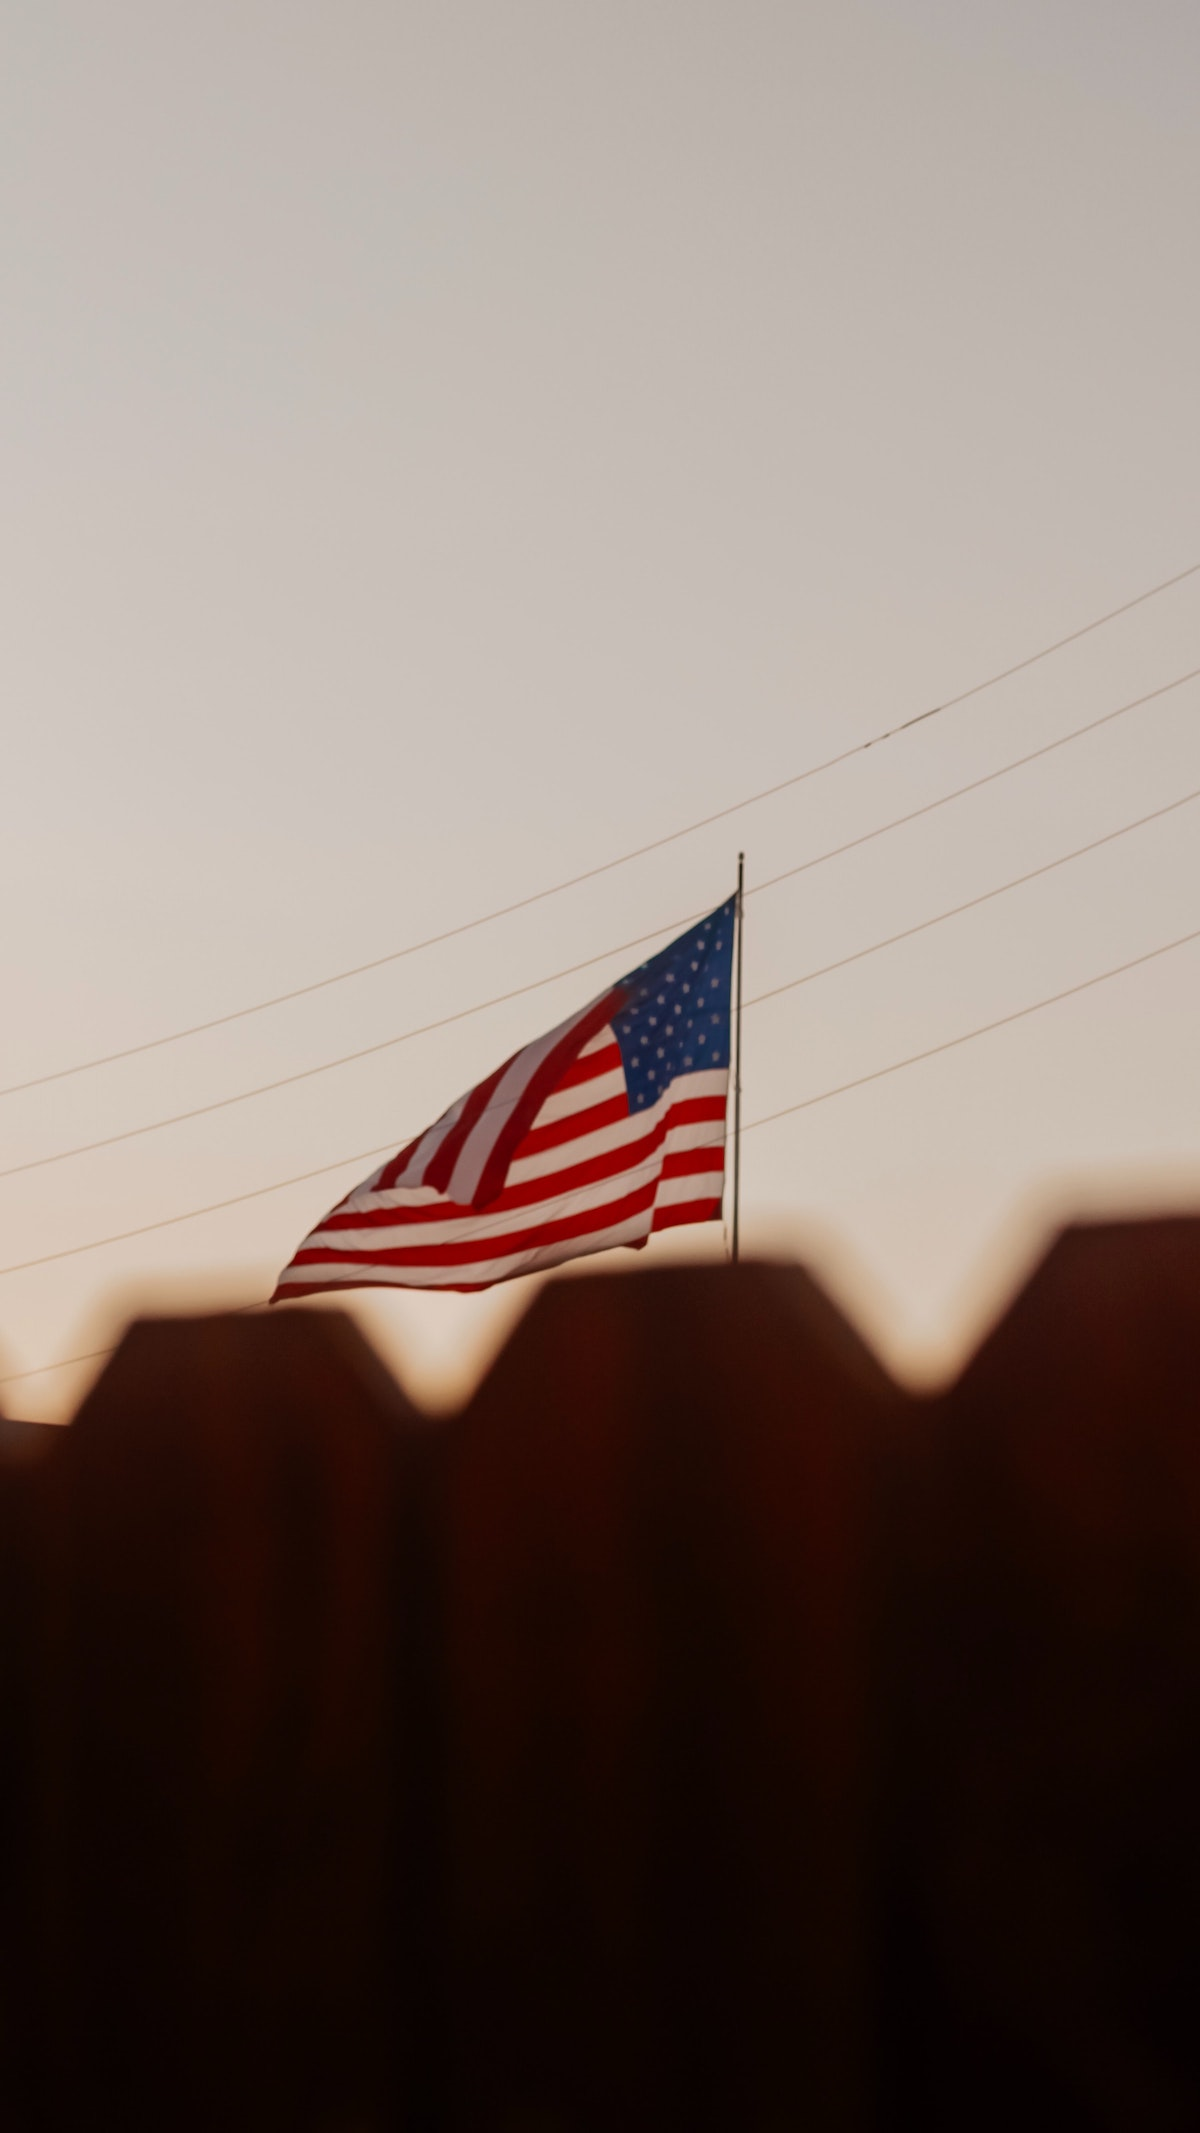 A photo of the American flag displayed just above the top of a fence in the foreground